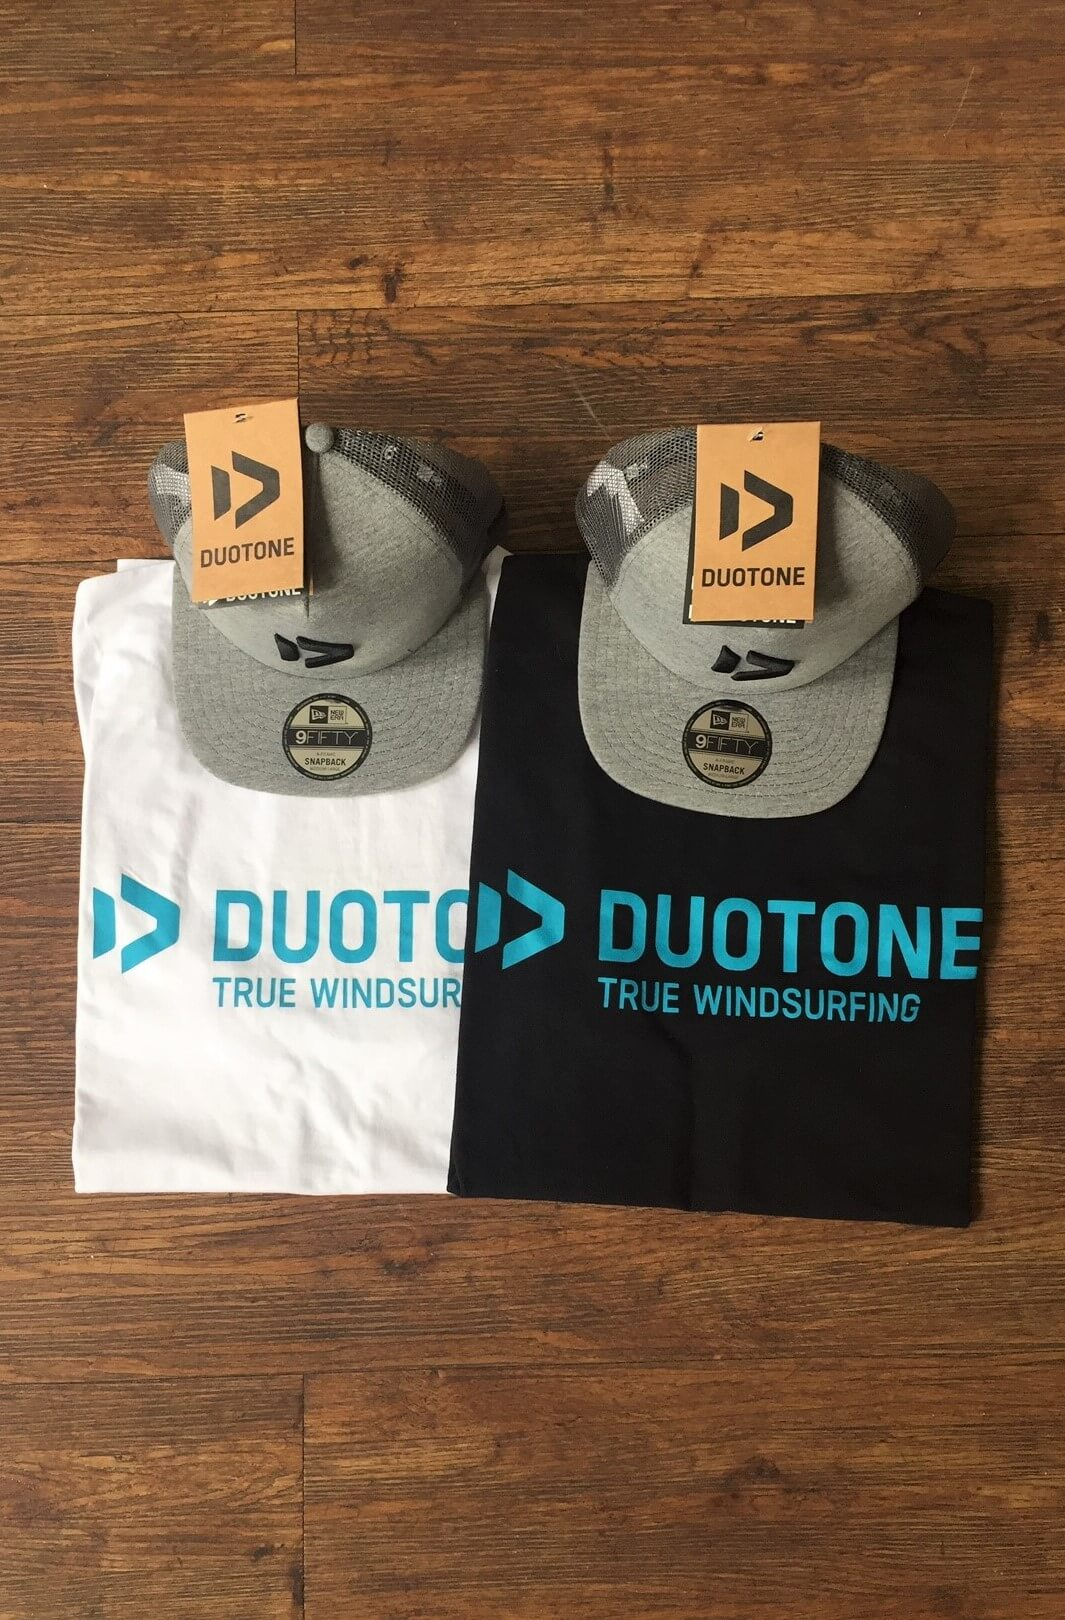 Duotone Windsurfing T-Shirts and Caps